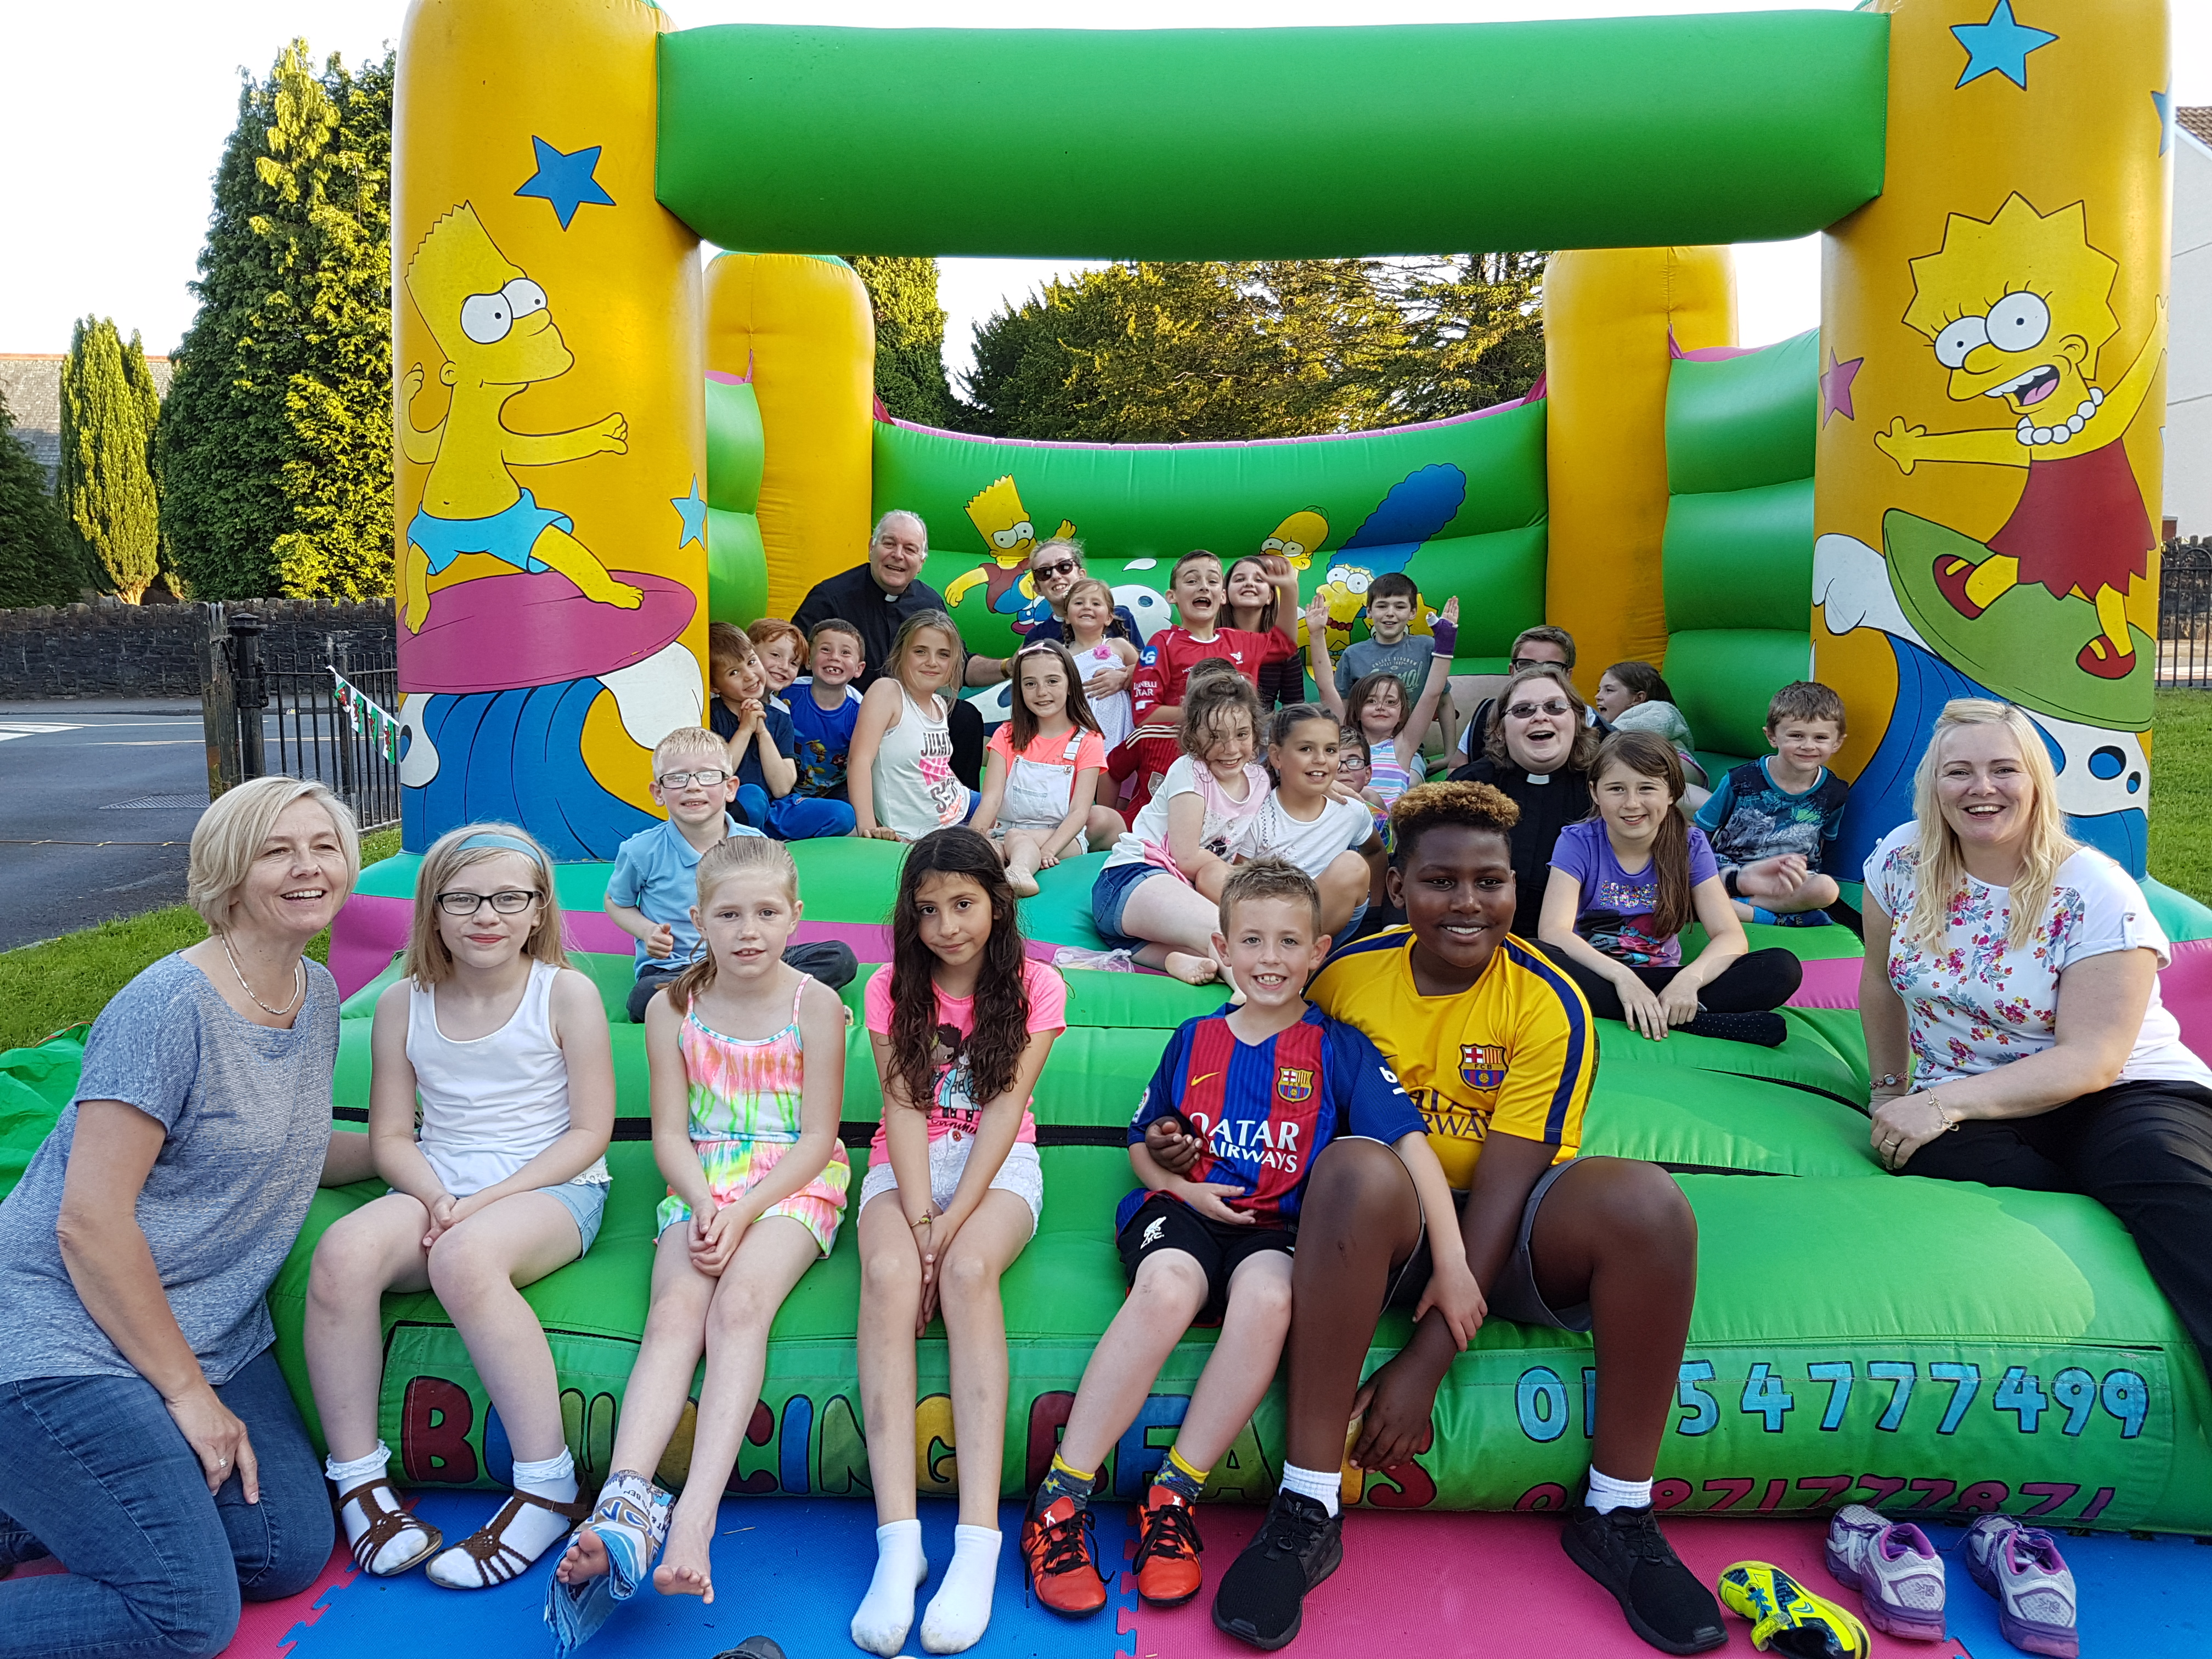 Junior Youth Sponsored Bounce By The Junior Youth Club The Churches Of Dafen